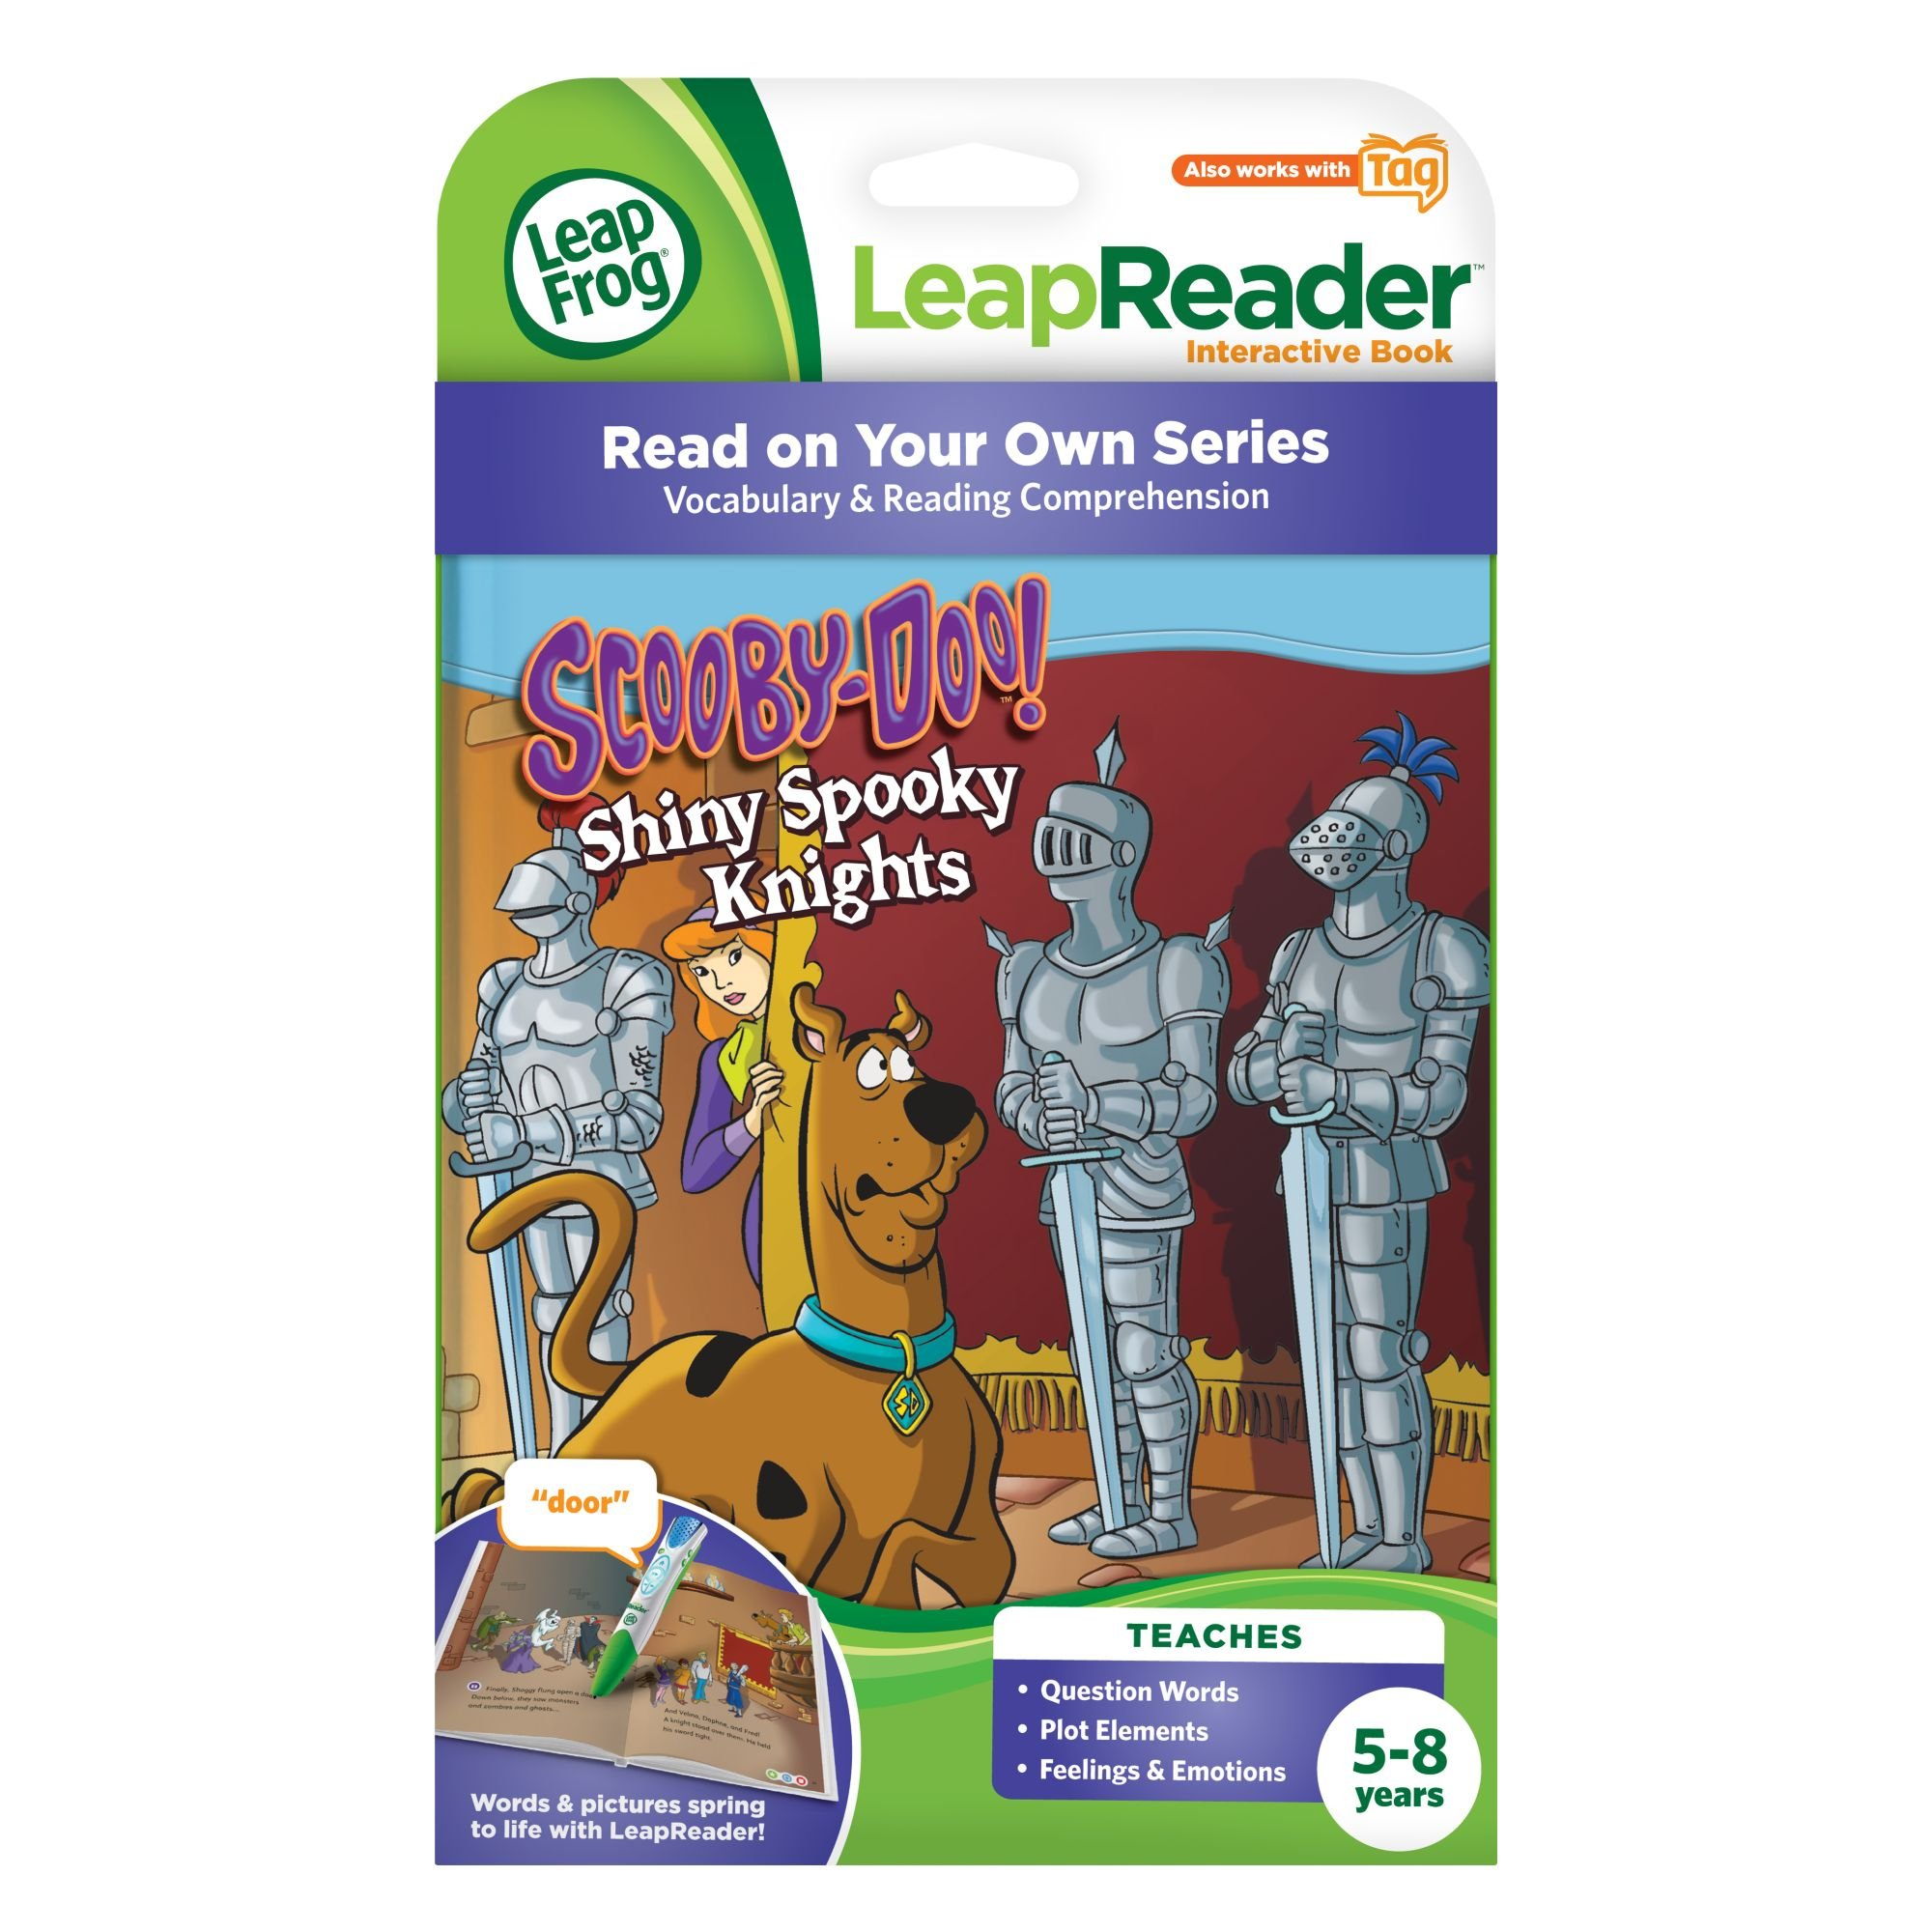 LeapFrog LeapReader Book: Scooby-Doo! Shiny Spooky Knights (works with Tag) by LeapFrog (Image #3)